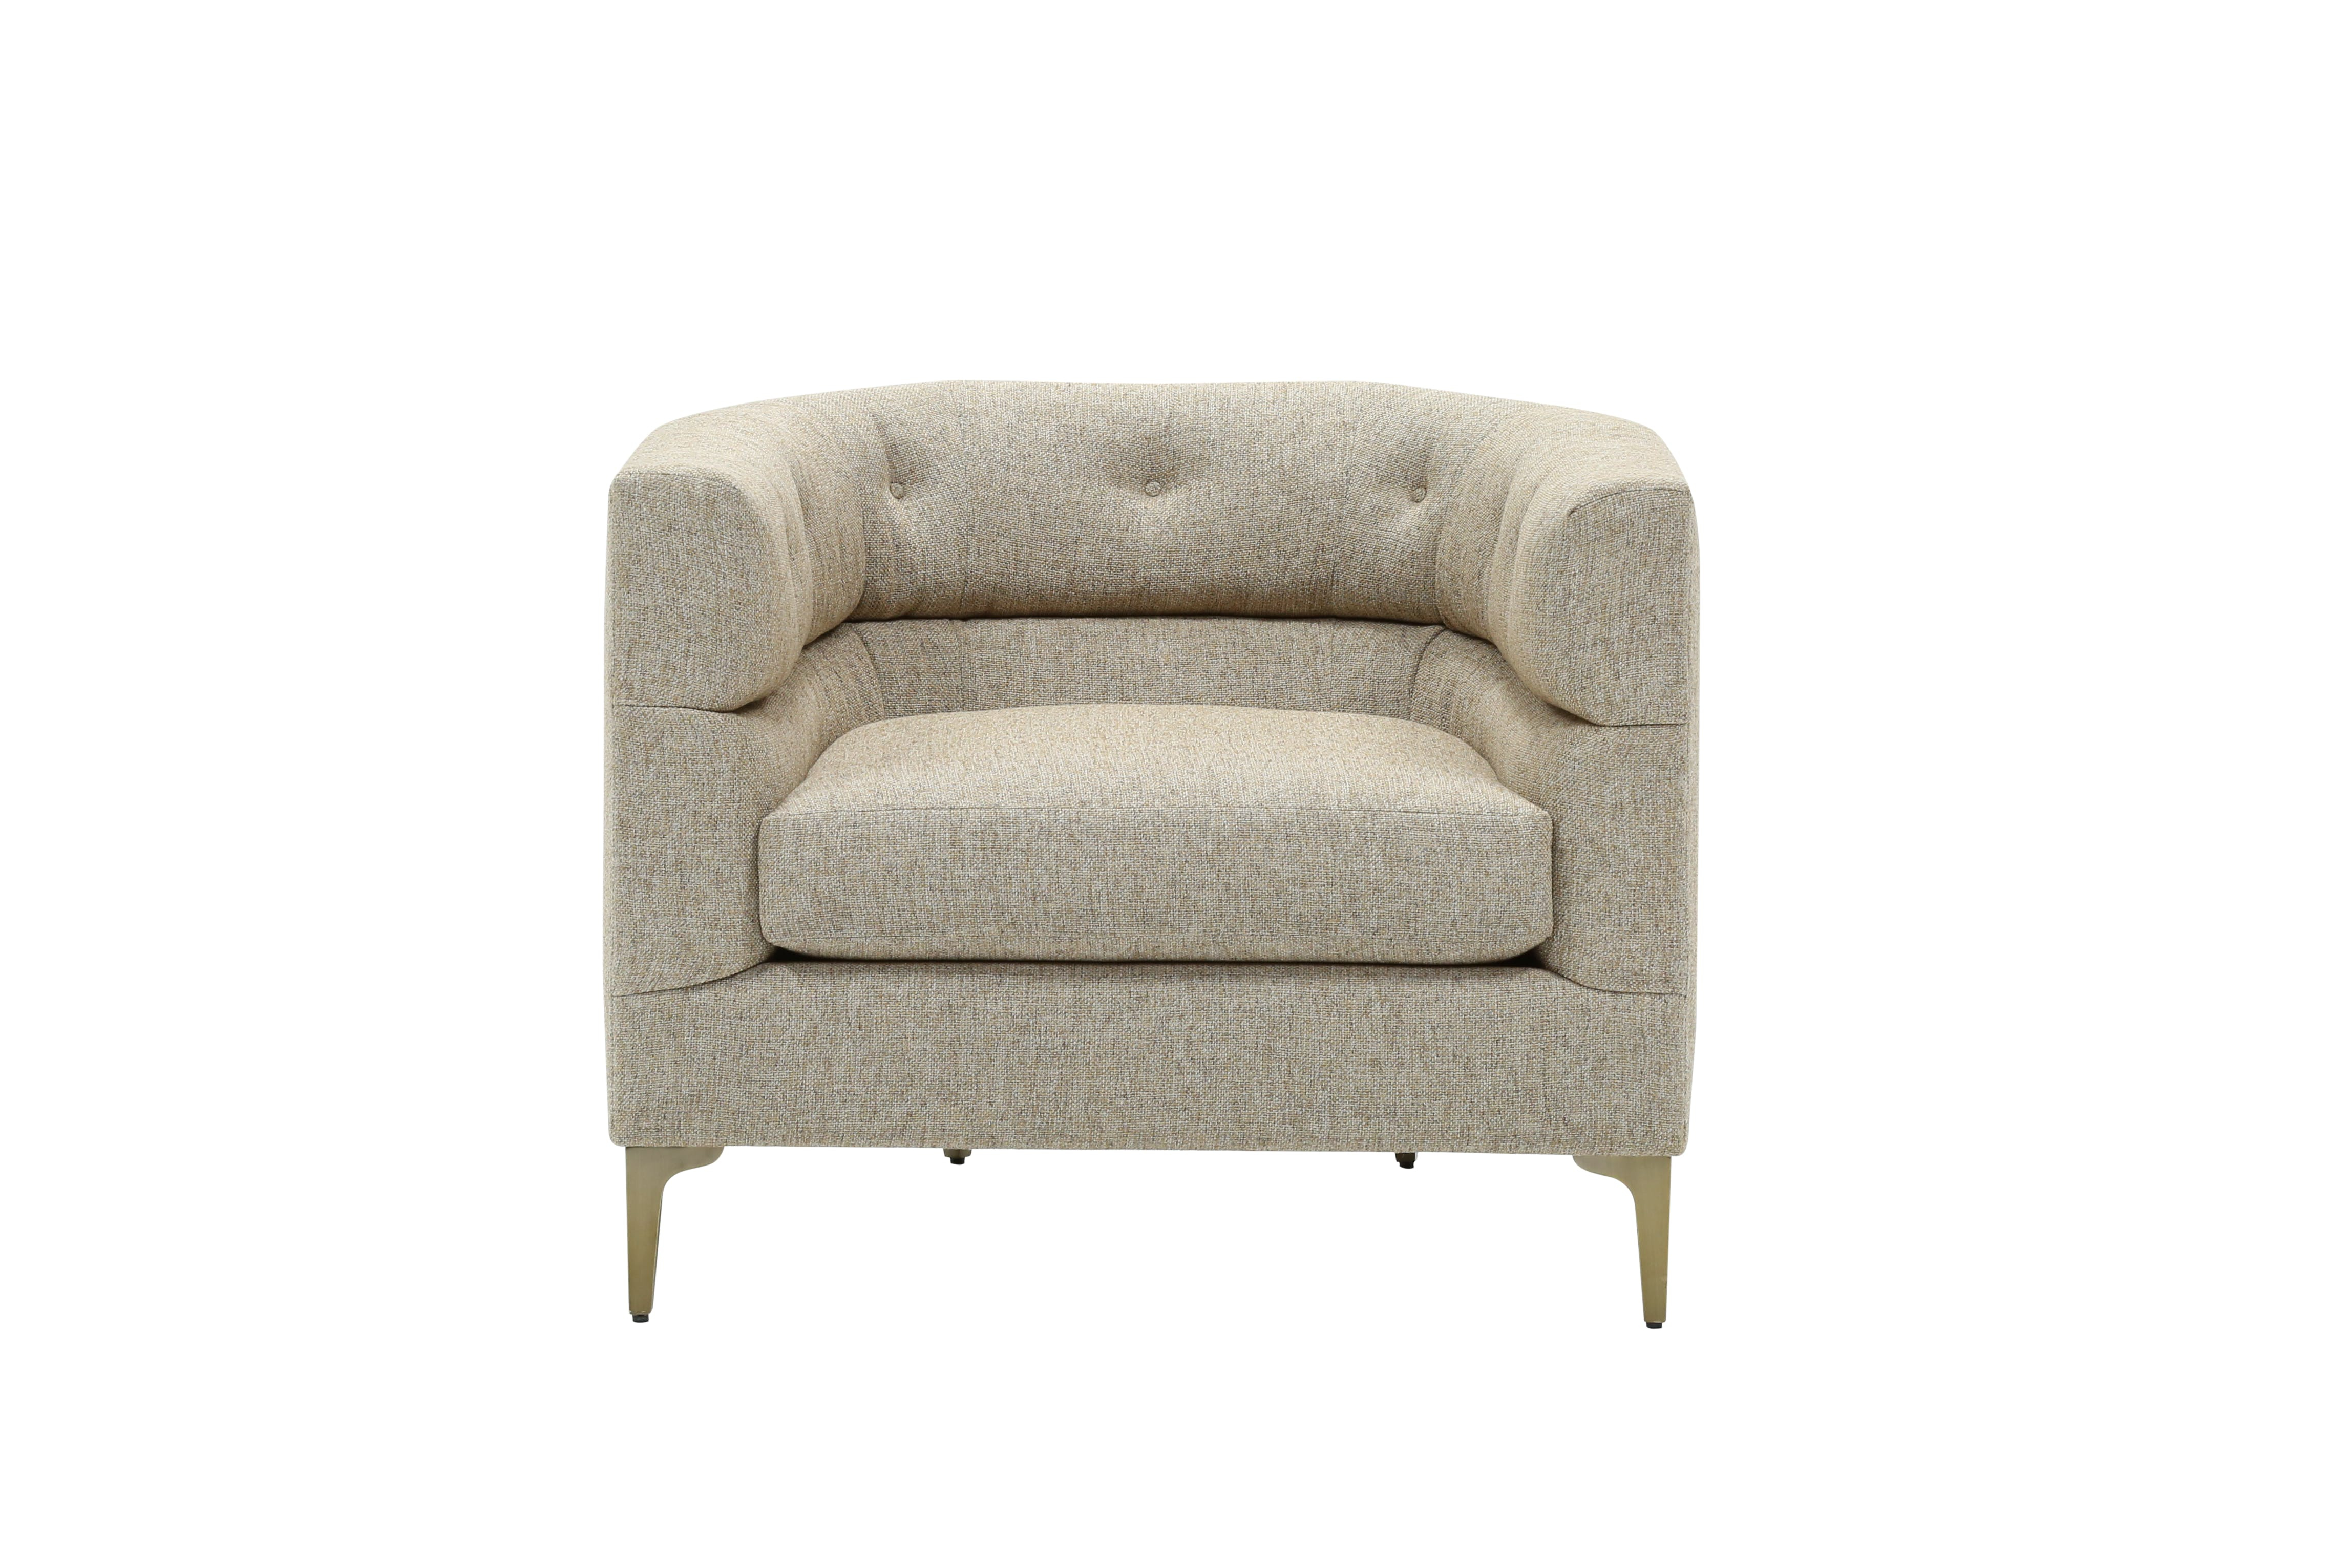 Nate Berkus Just Launched A Home Collection With Hubby Jeremiah Pertaining To Ames Arm Sofa Chairs By Nate Berkus And Jeremiah Brent (View 3 of 20)